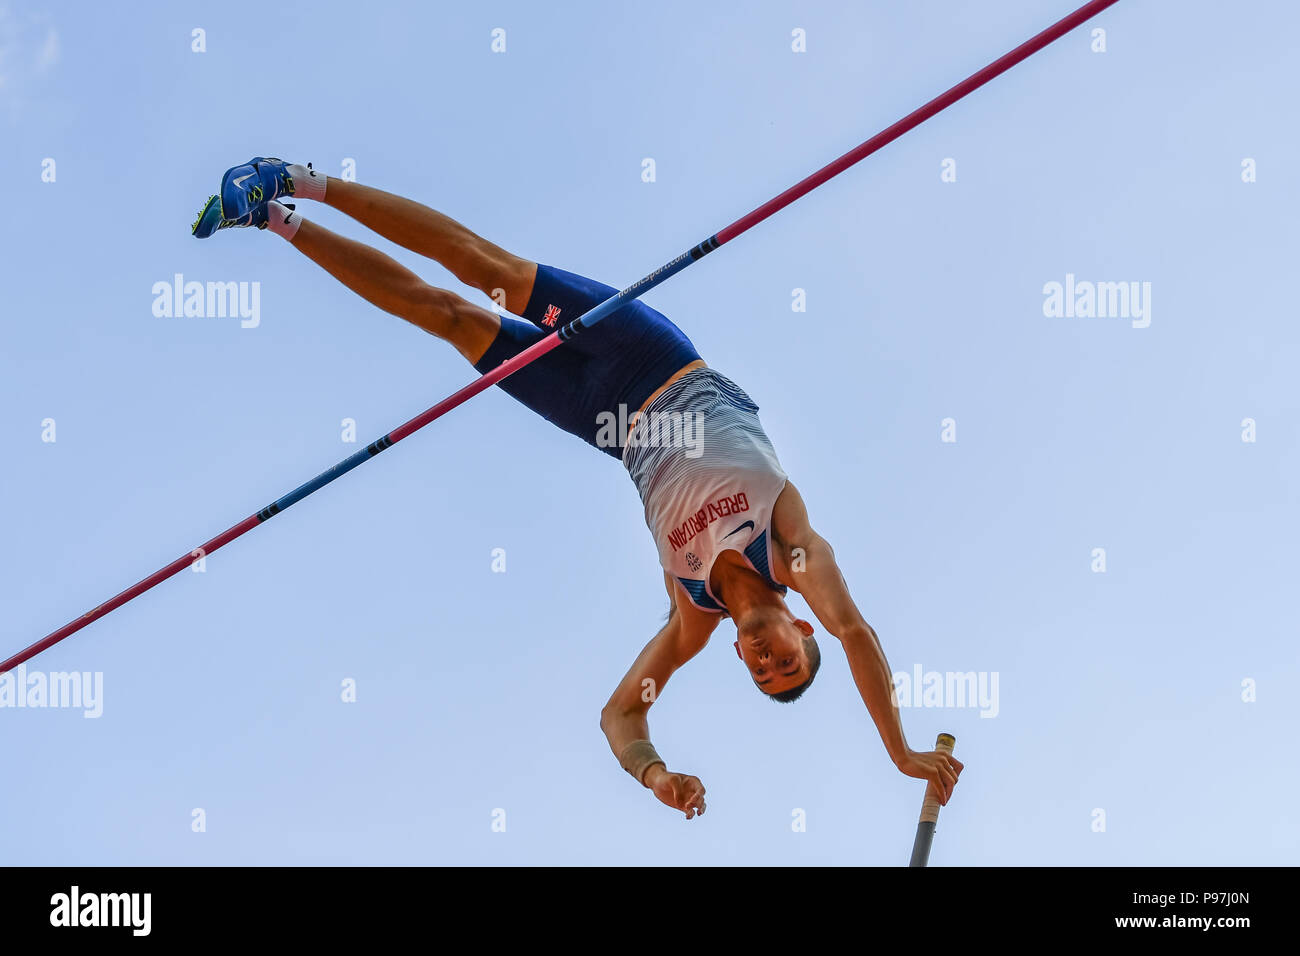 Charlie Myers (GBR) in Men's Pole Vault during Athletics World Cup London 2018 at London Stadium on Sunday, 15 July 2018. LONDON, ENGLAND. Credit: Taka G Wu - Stock Image